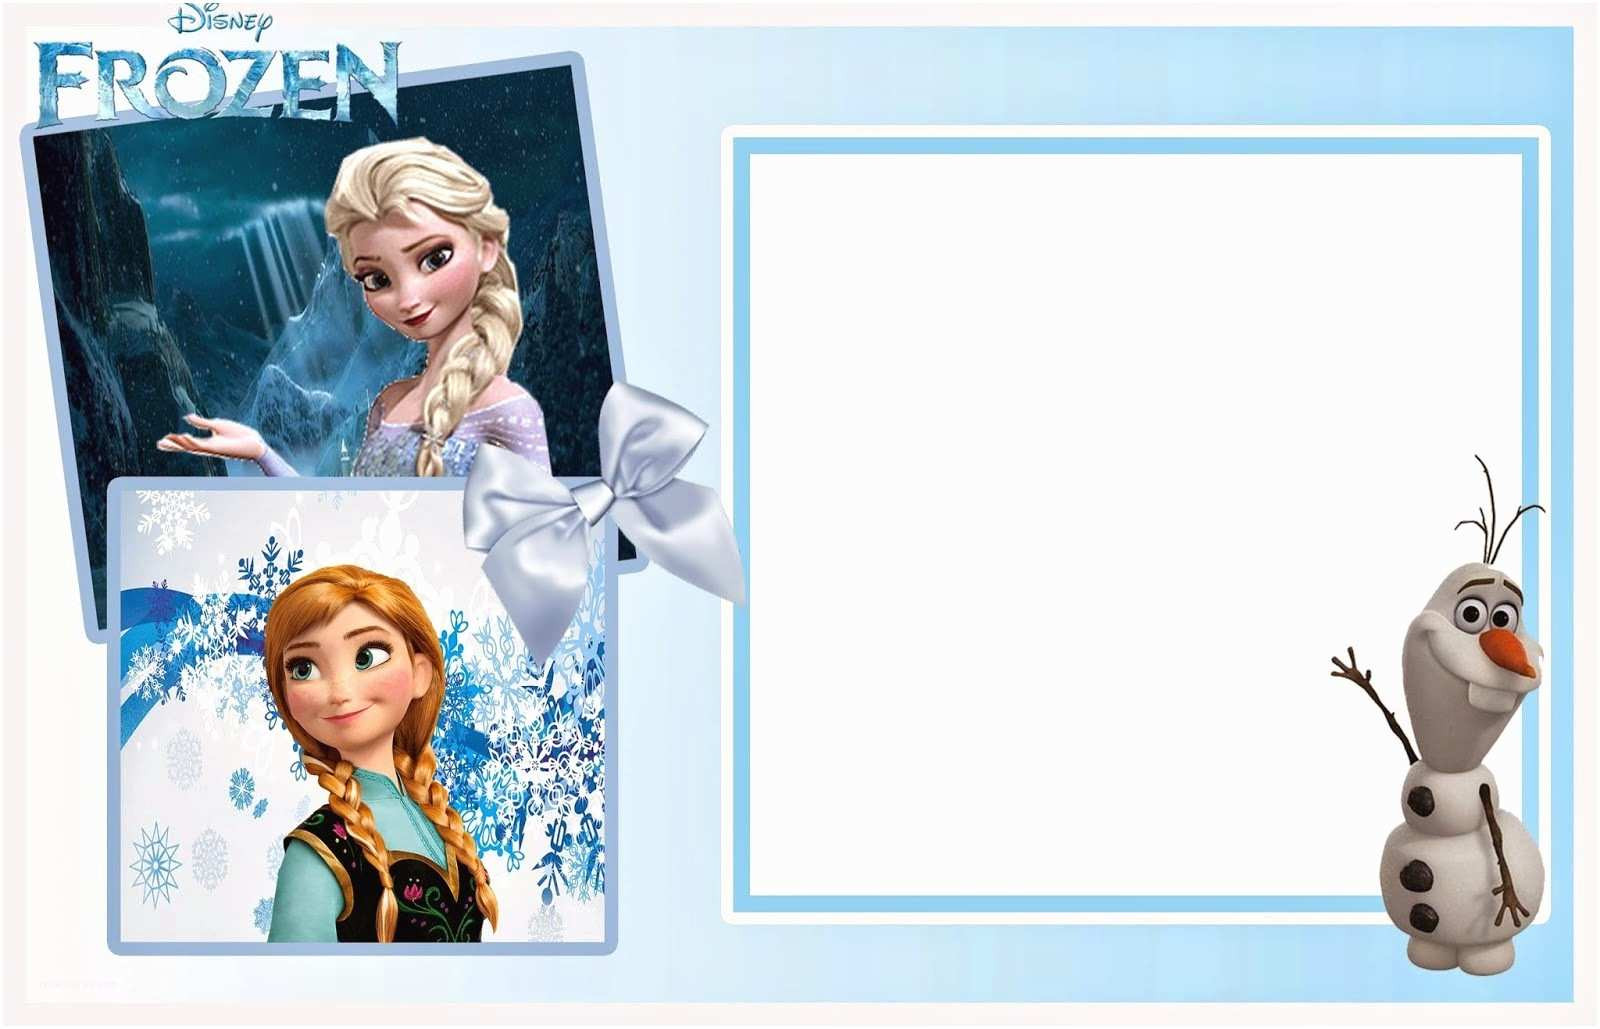 Frozen Printable Invitation Frozen Birthday Invitation so Cute Frozen Free Printable